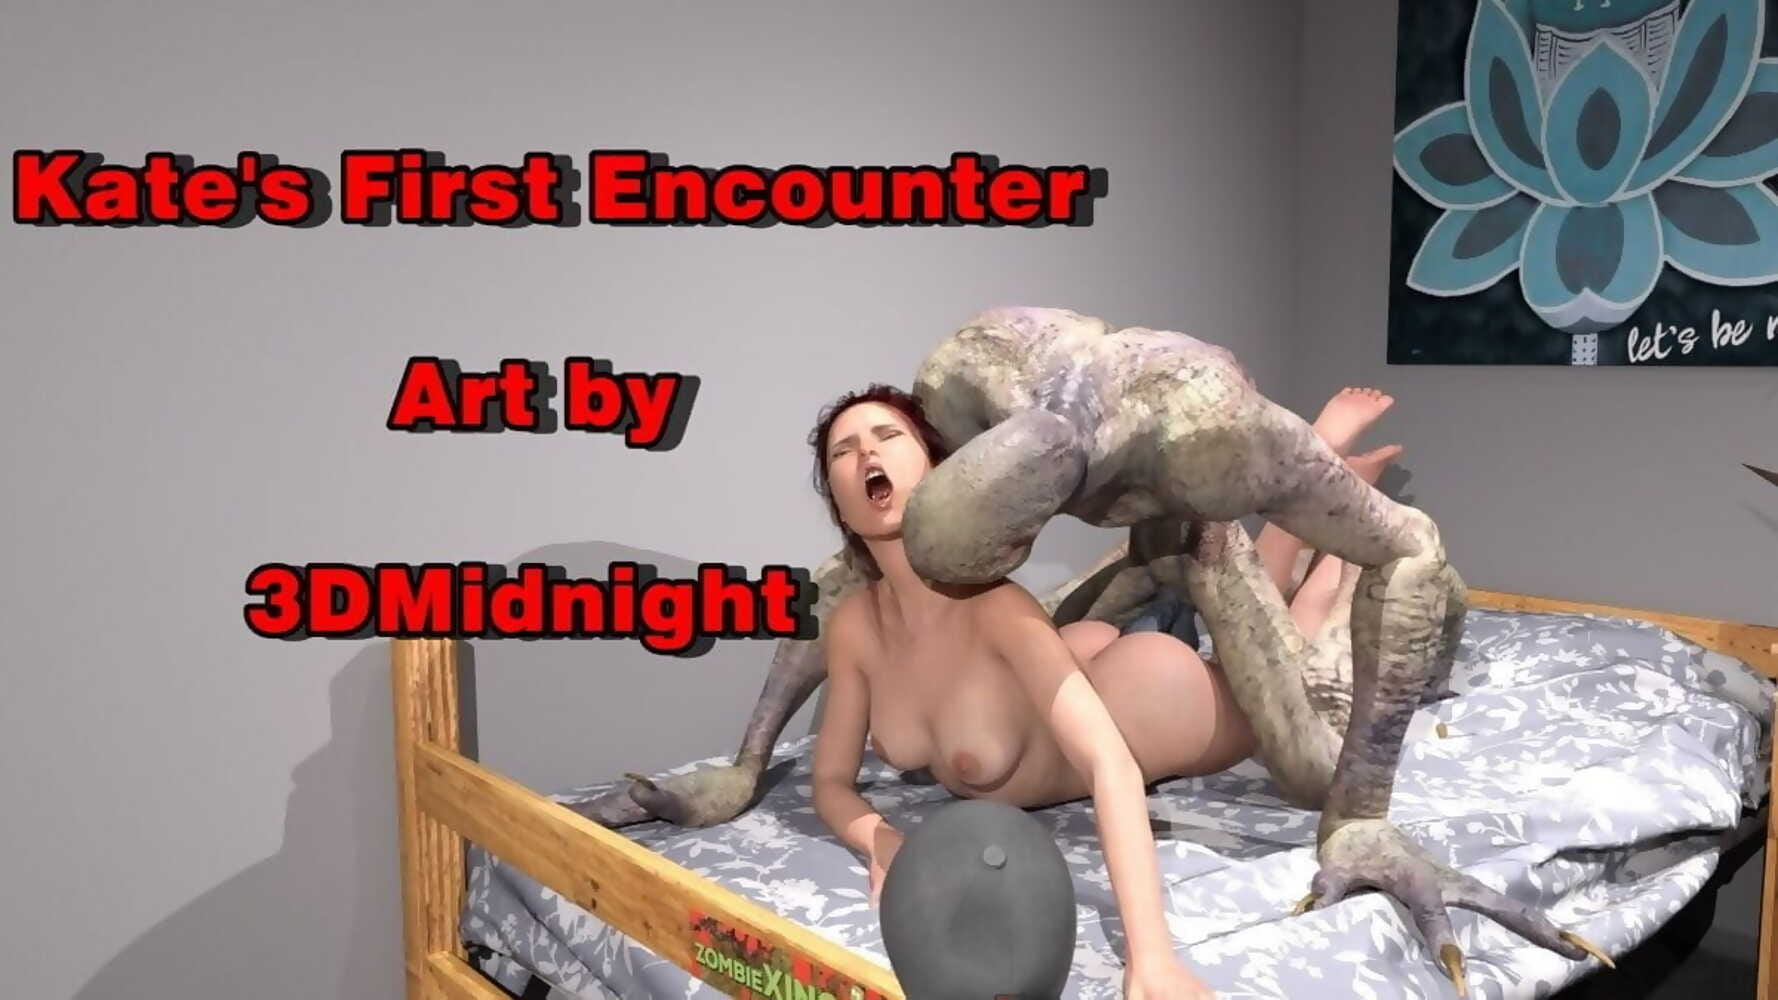 3DMidnight- Kate's First Encounter